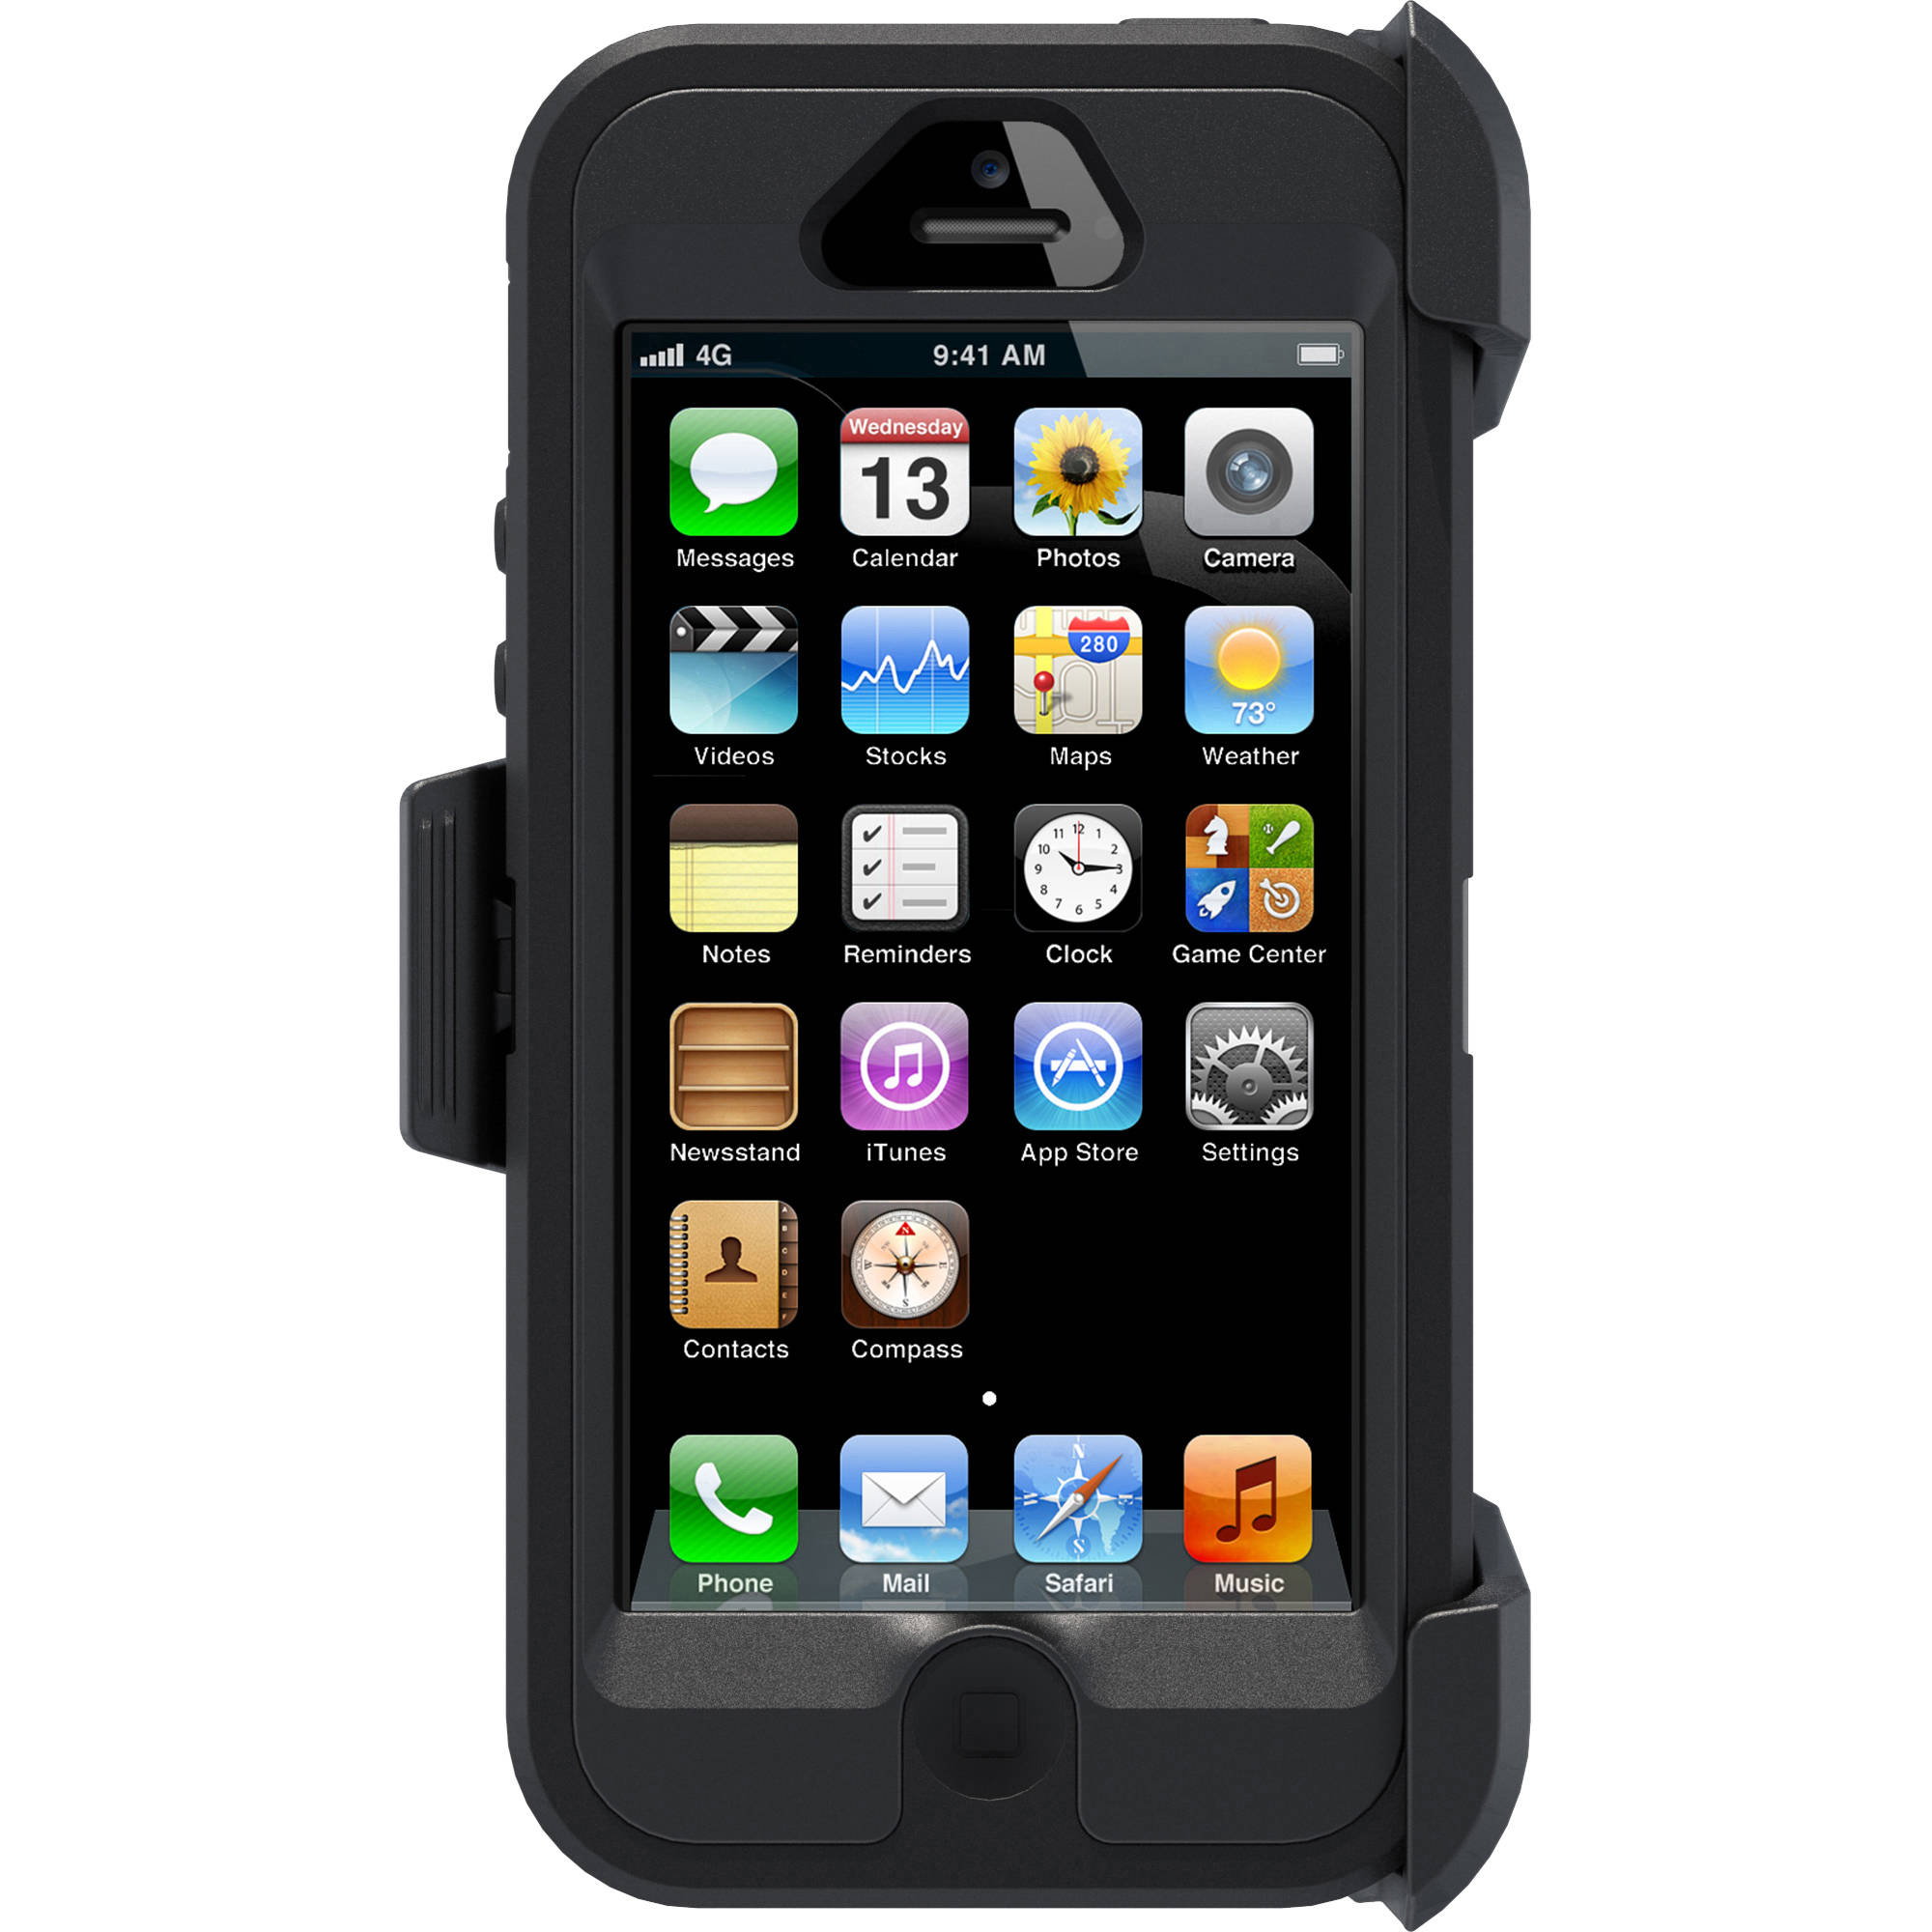 buy online 3efd3 6e1aa Otterbox Defender Case for iPhone 5/5S/SE